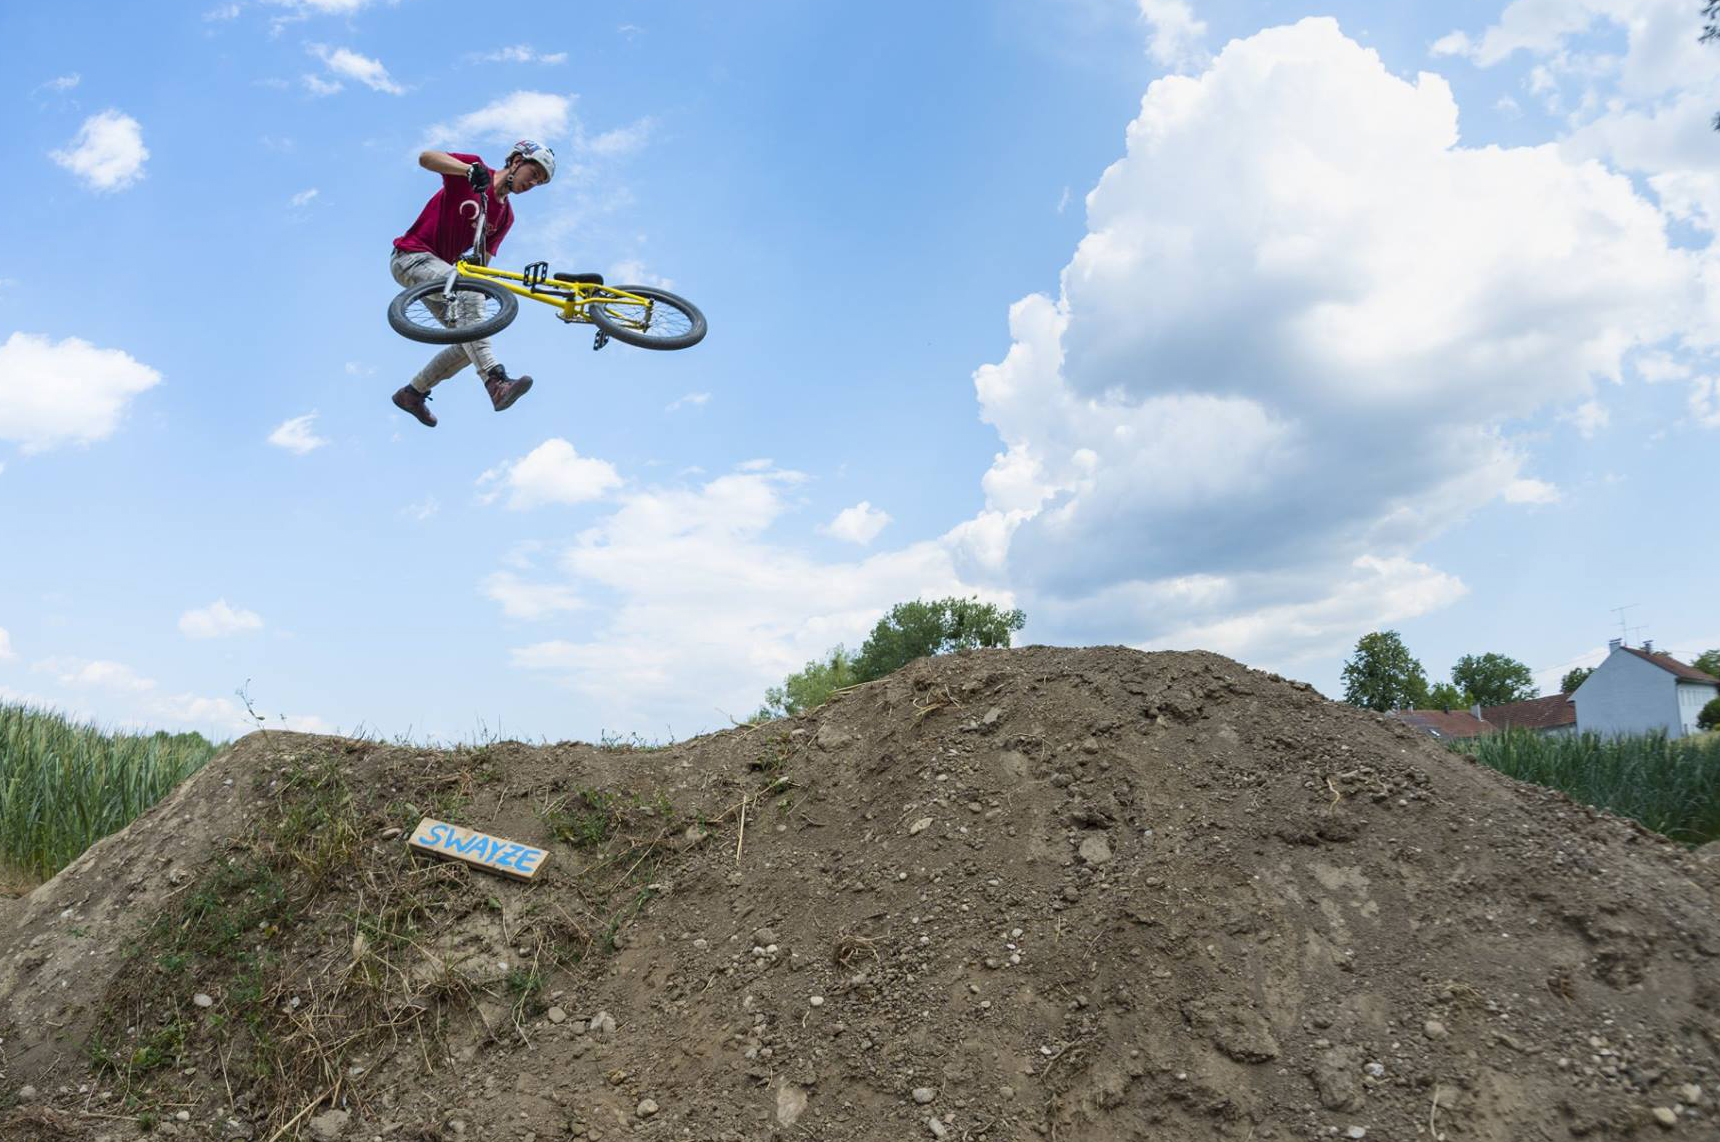 Pumptrack_4_web